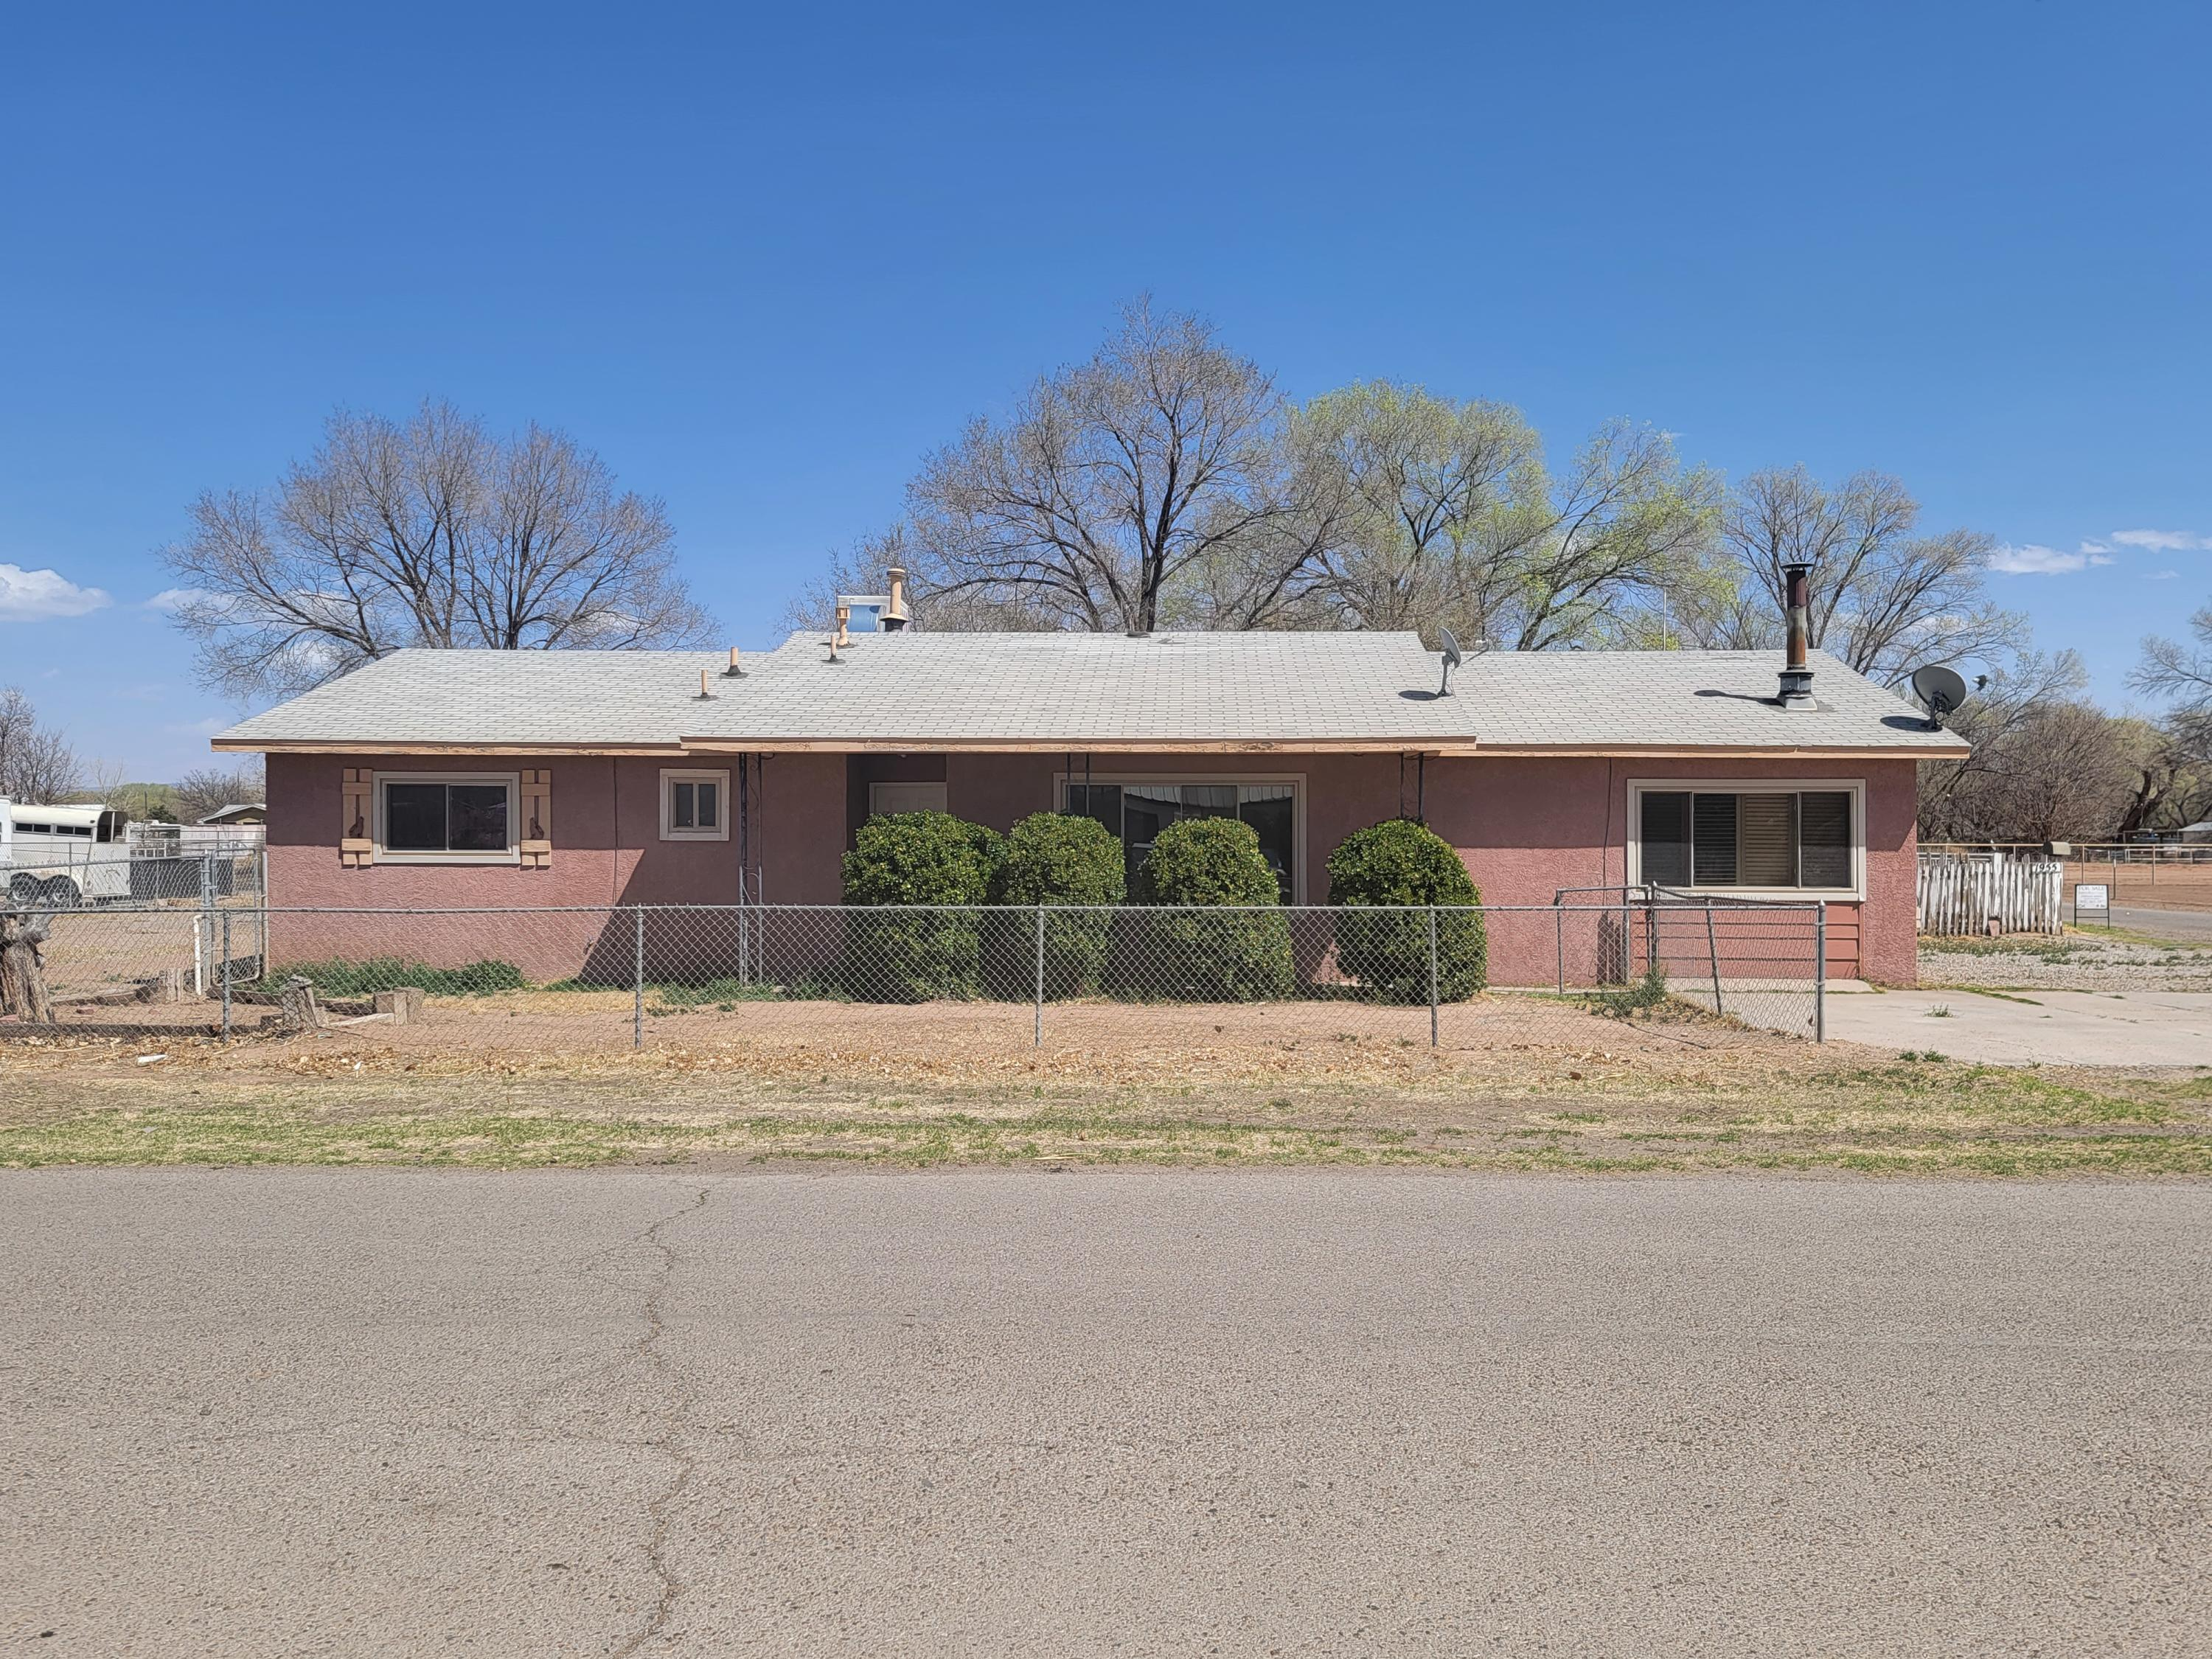 1955 PEARL Loop Property Photo - Bosque Farms, NM real estate listing